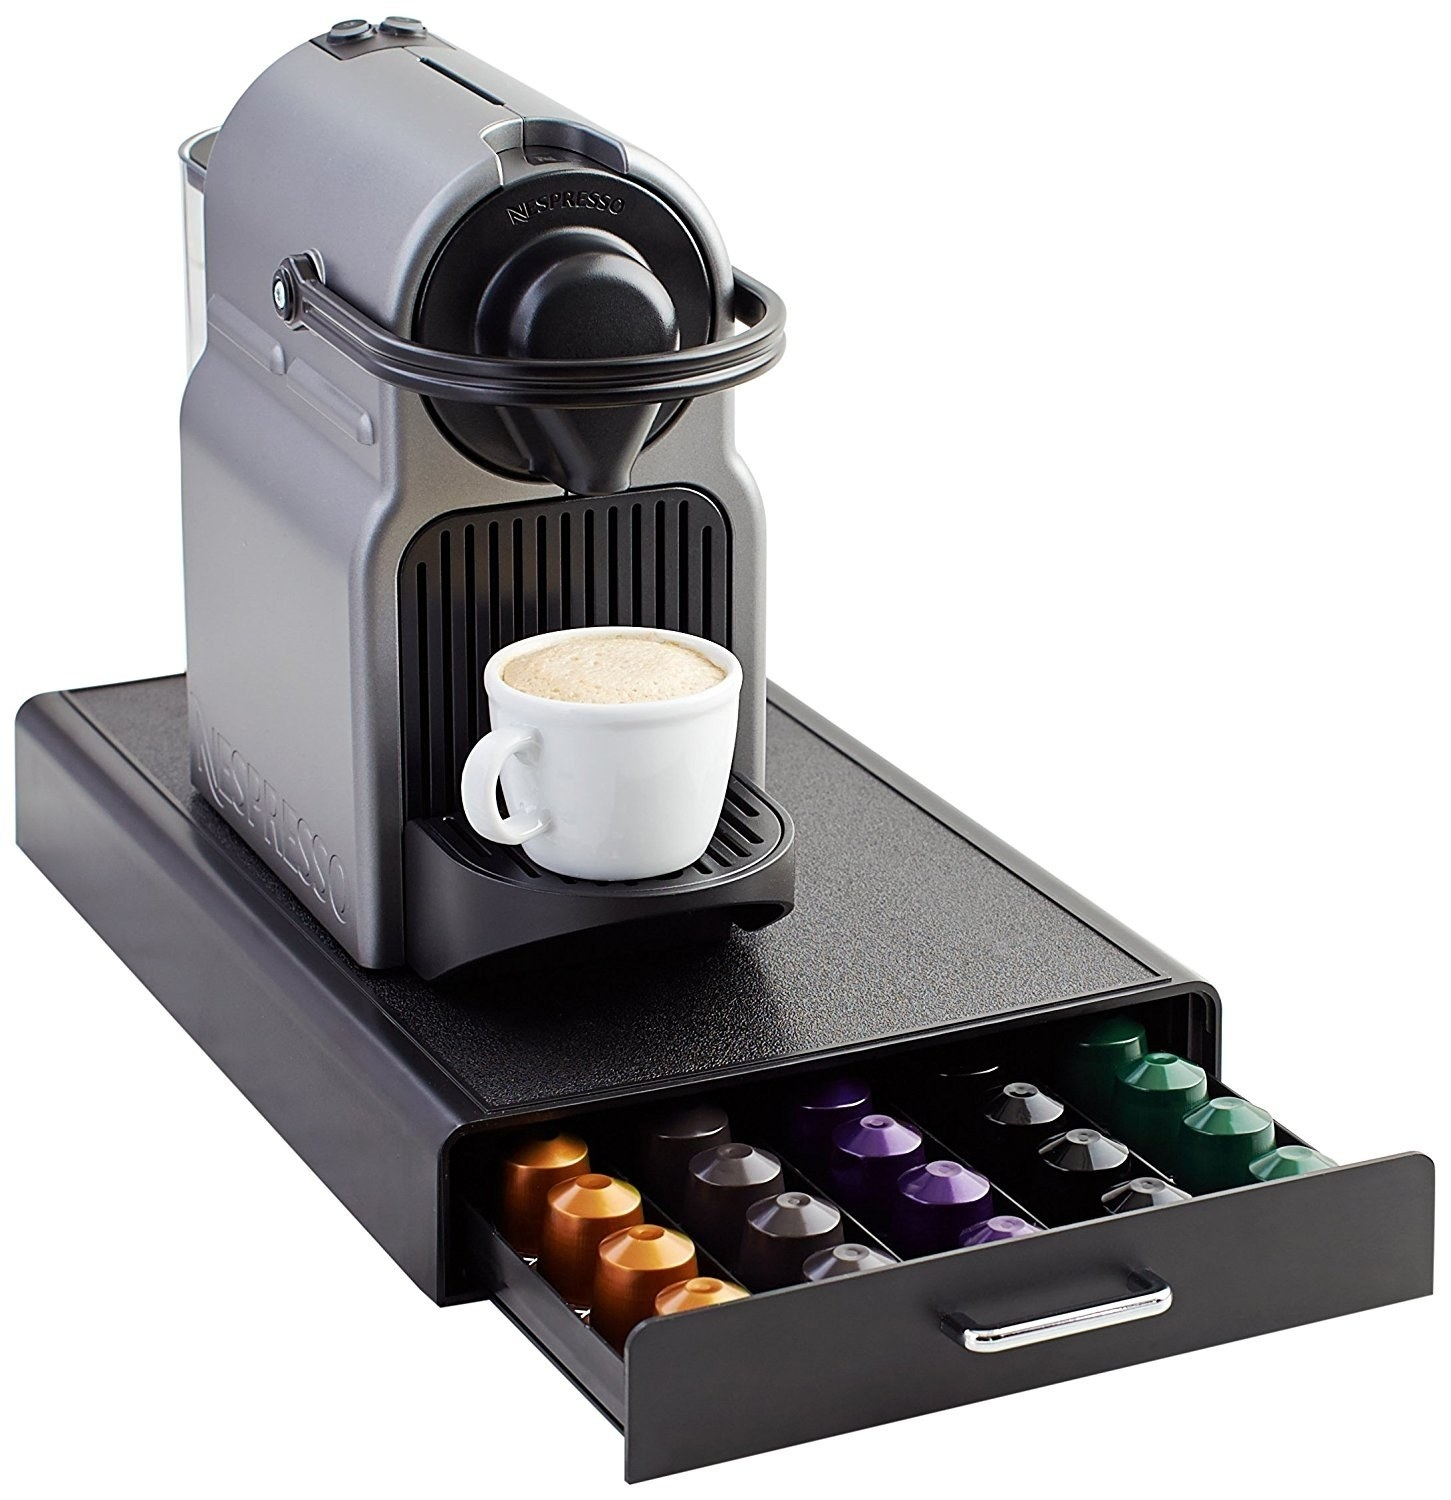 The drawer with capsules inside, with a Nespresso machine sitting on top